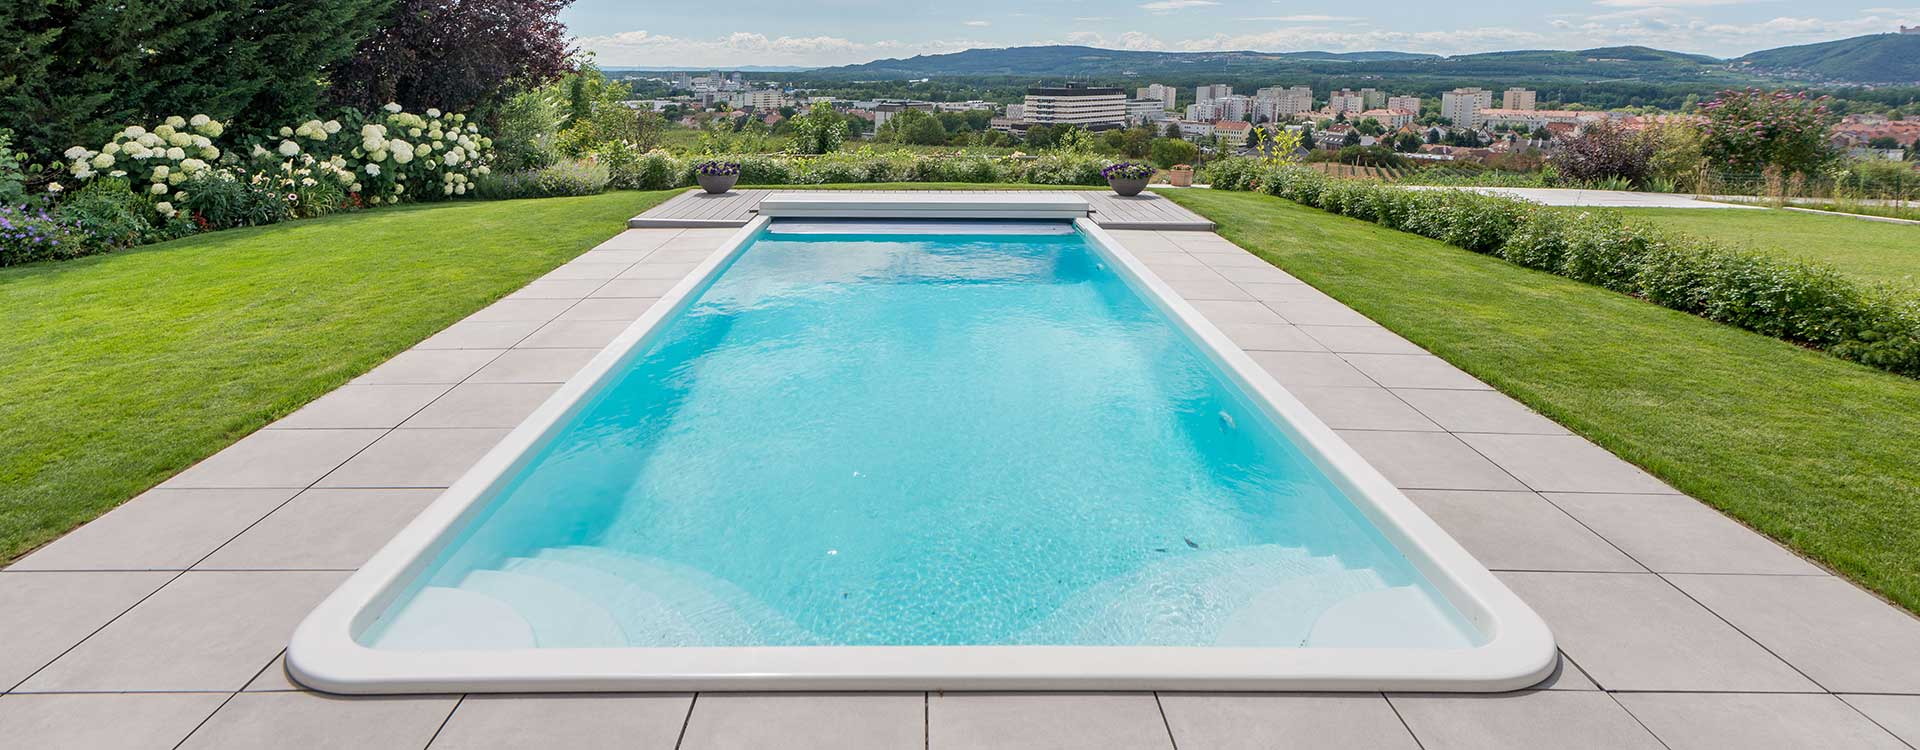 Ein Pool von Wallnerpool